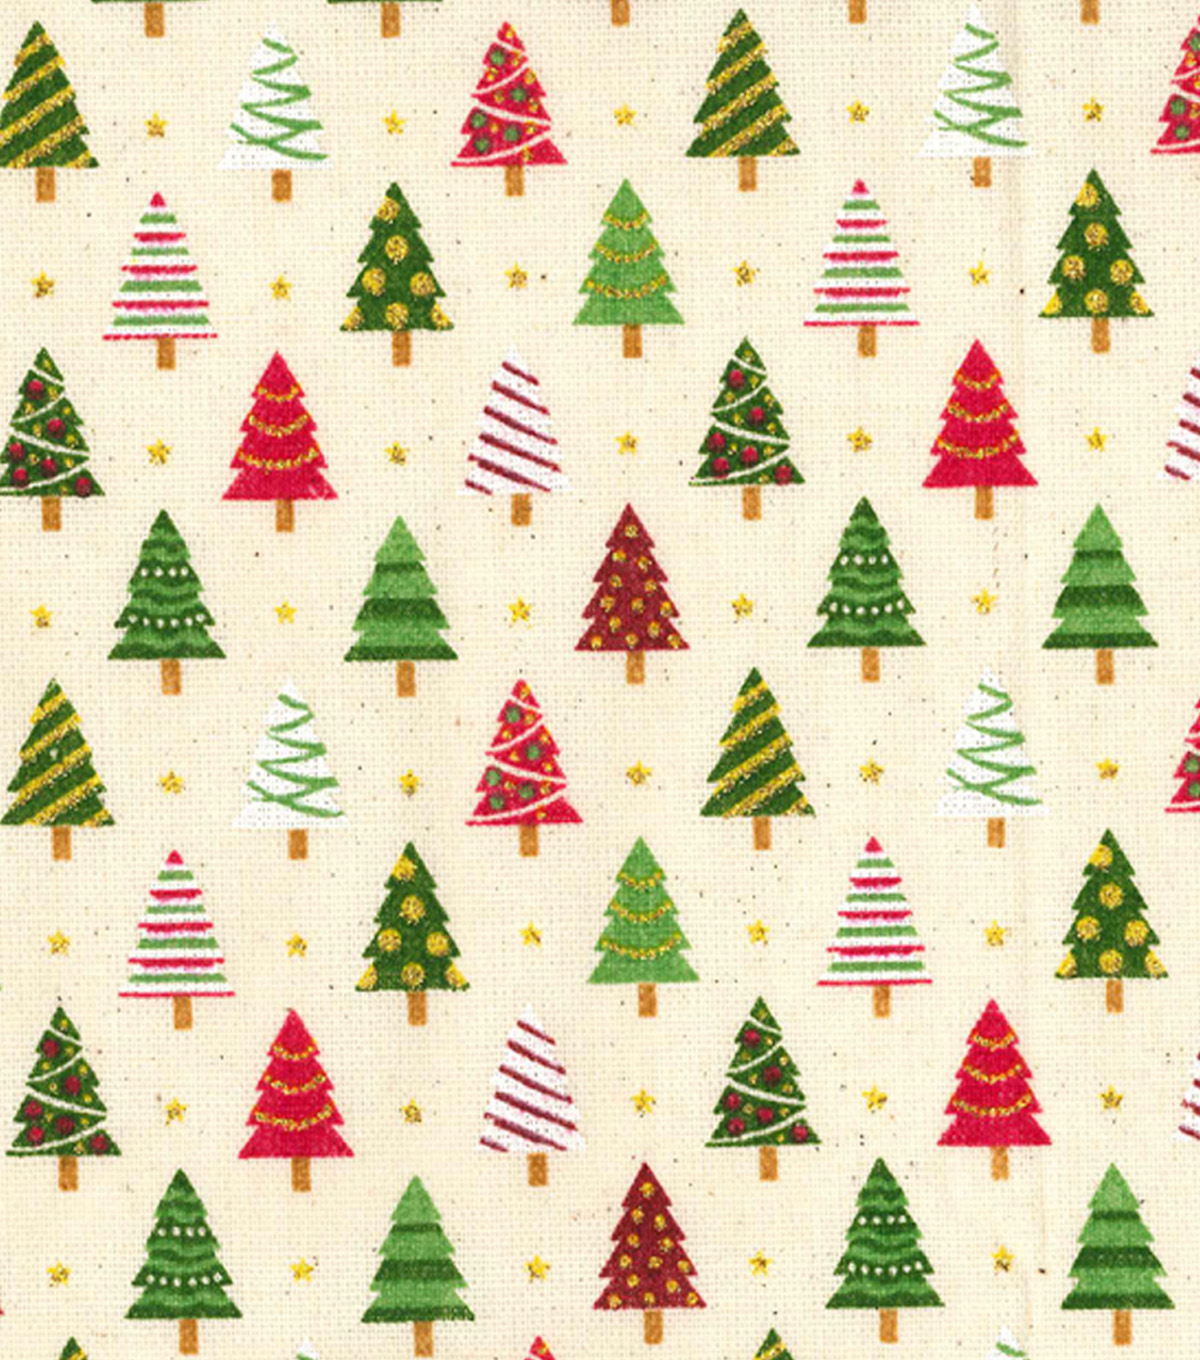 Christmas Osnaburg Cotton Print Fabric -Christmas Tree